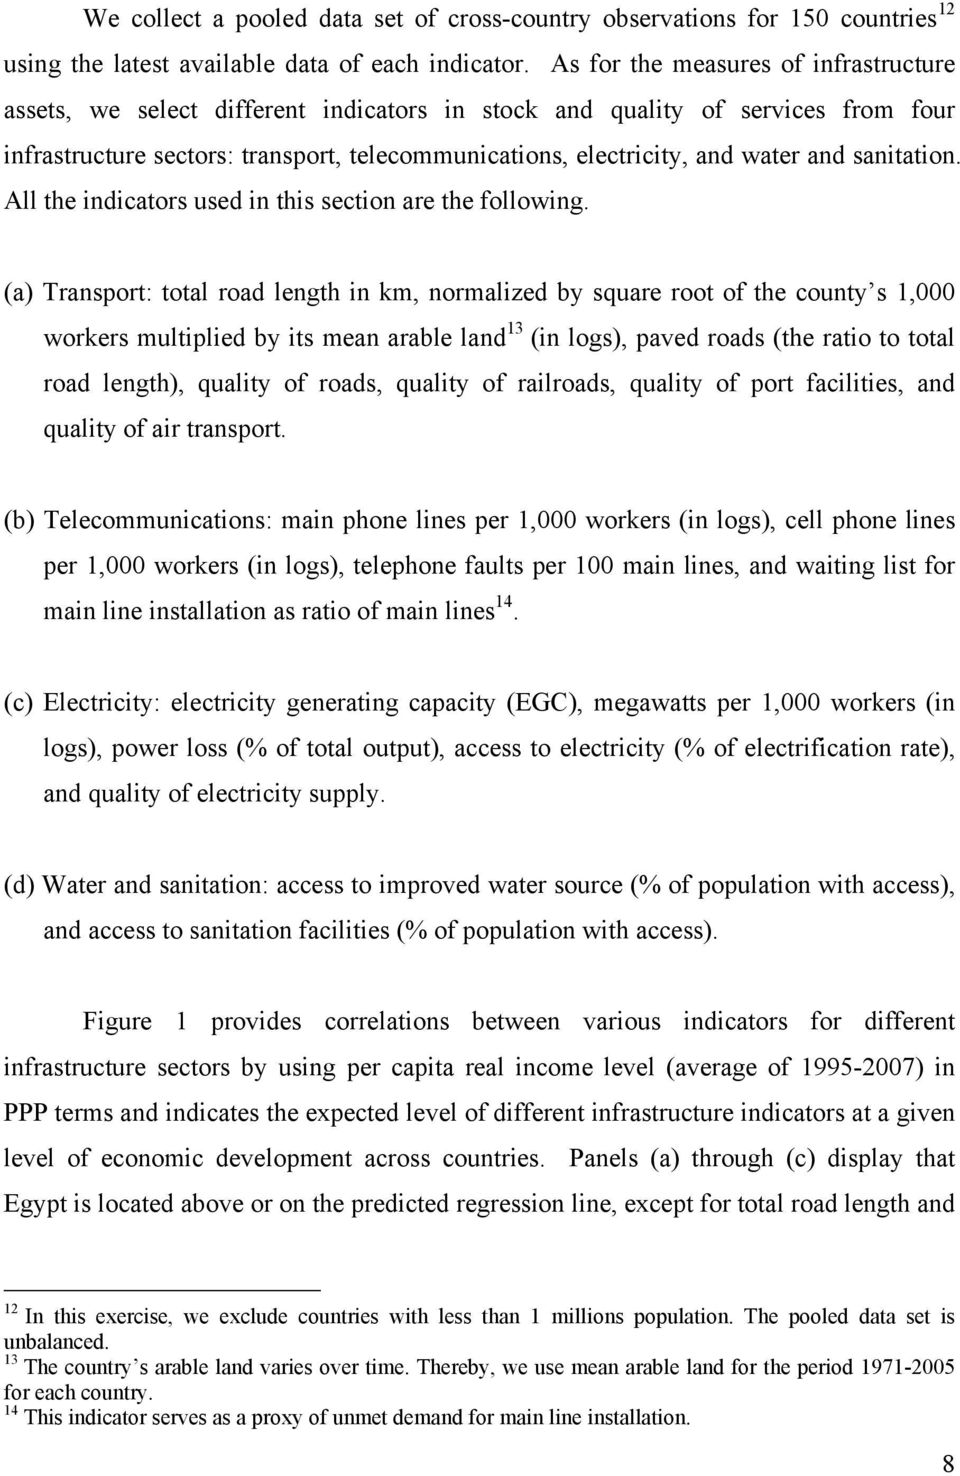 and sanitation. All the indicators used in this section are the following.